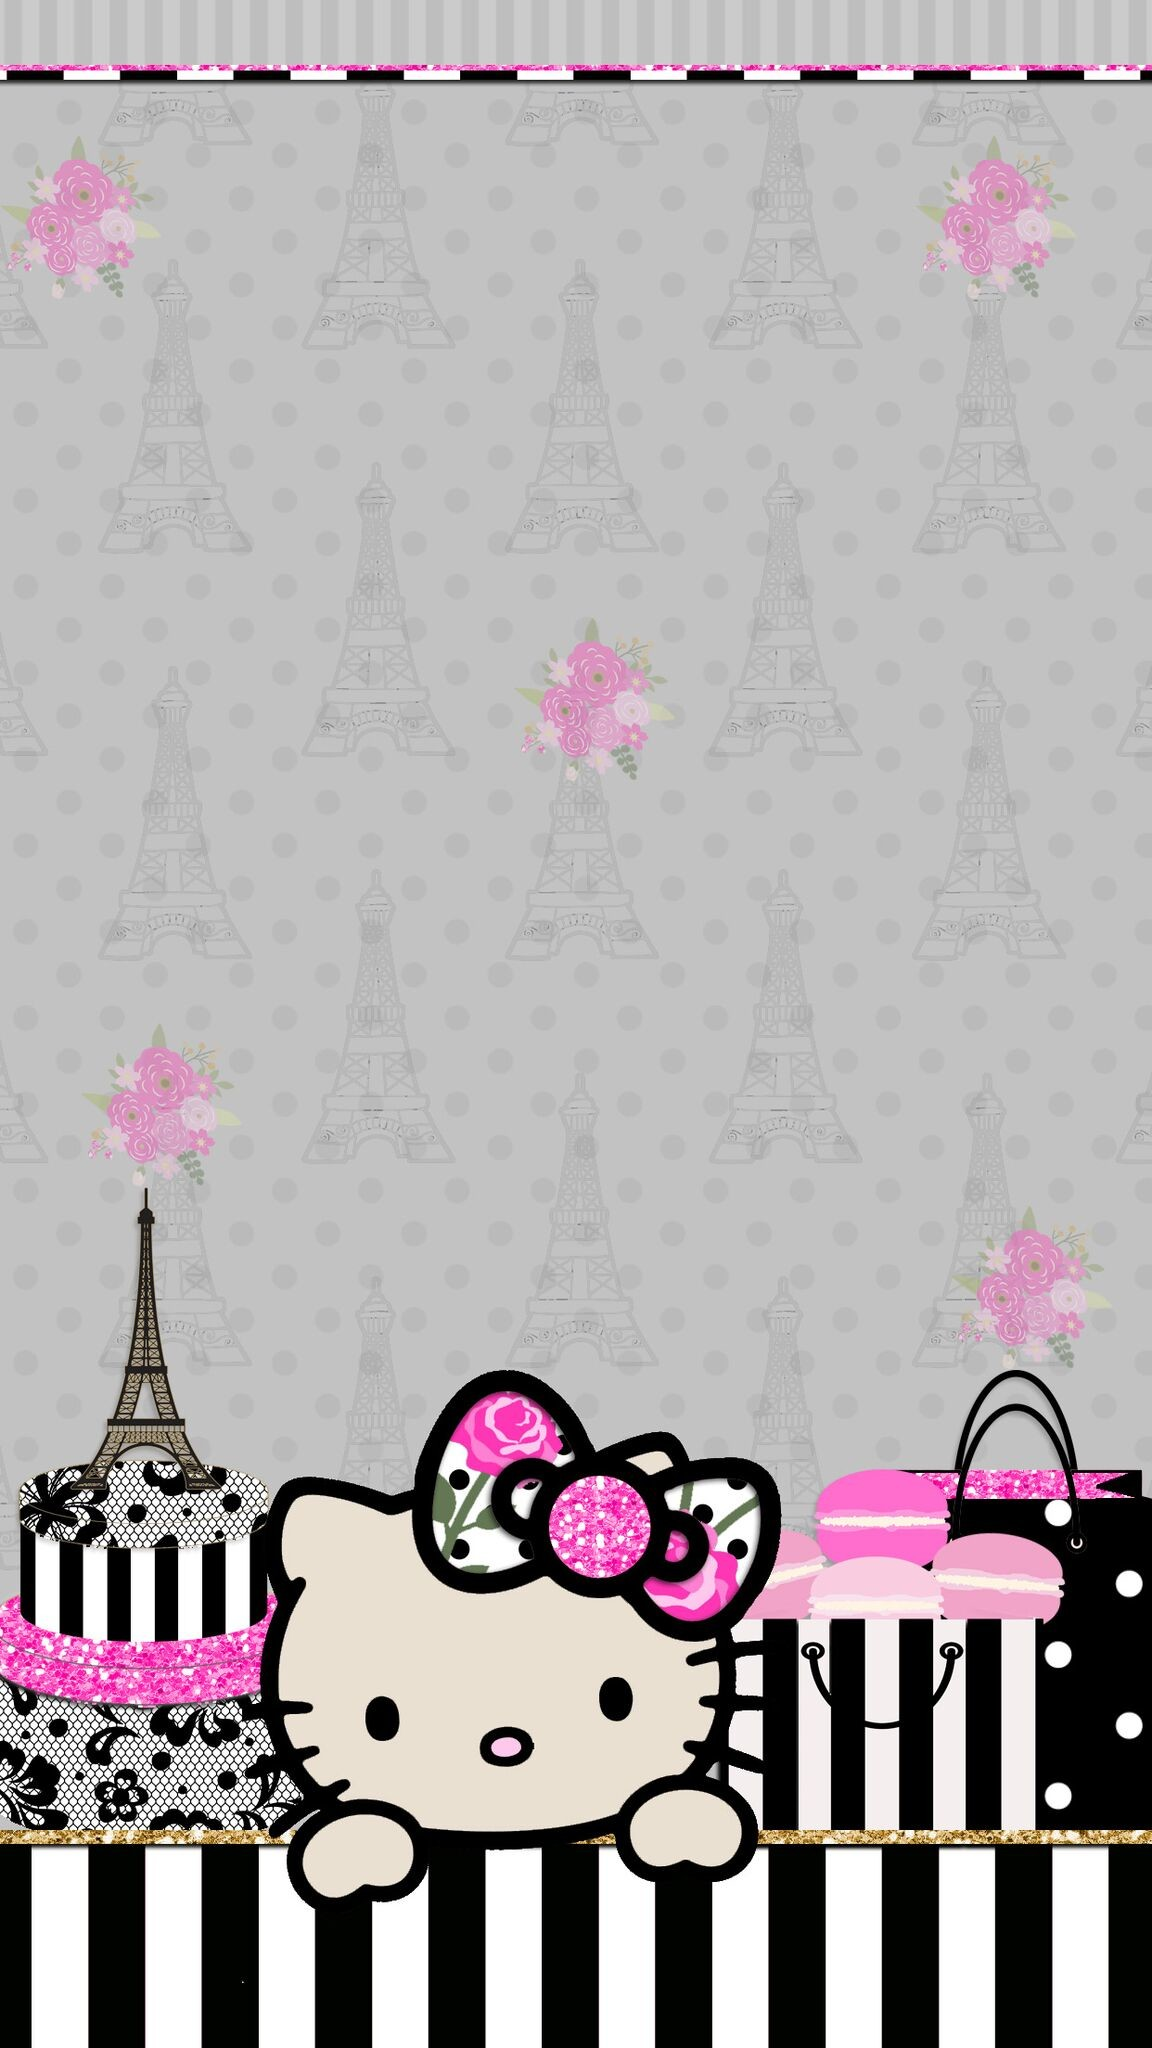 Amazing Wallpaper Hello Kitty Rose Gold - 1060694-best-pink-hello-kitty-background-1152x2048-for-xiaomi  Graphic_347652.jpg